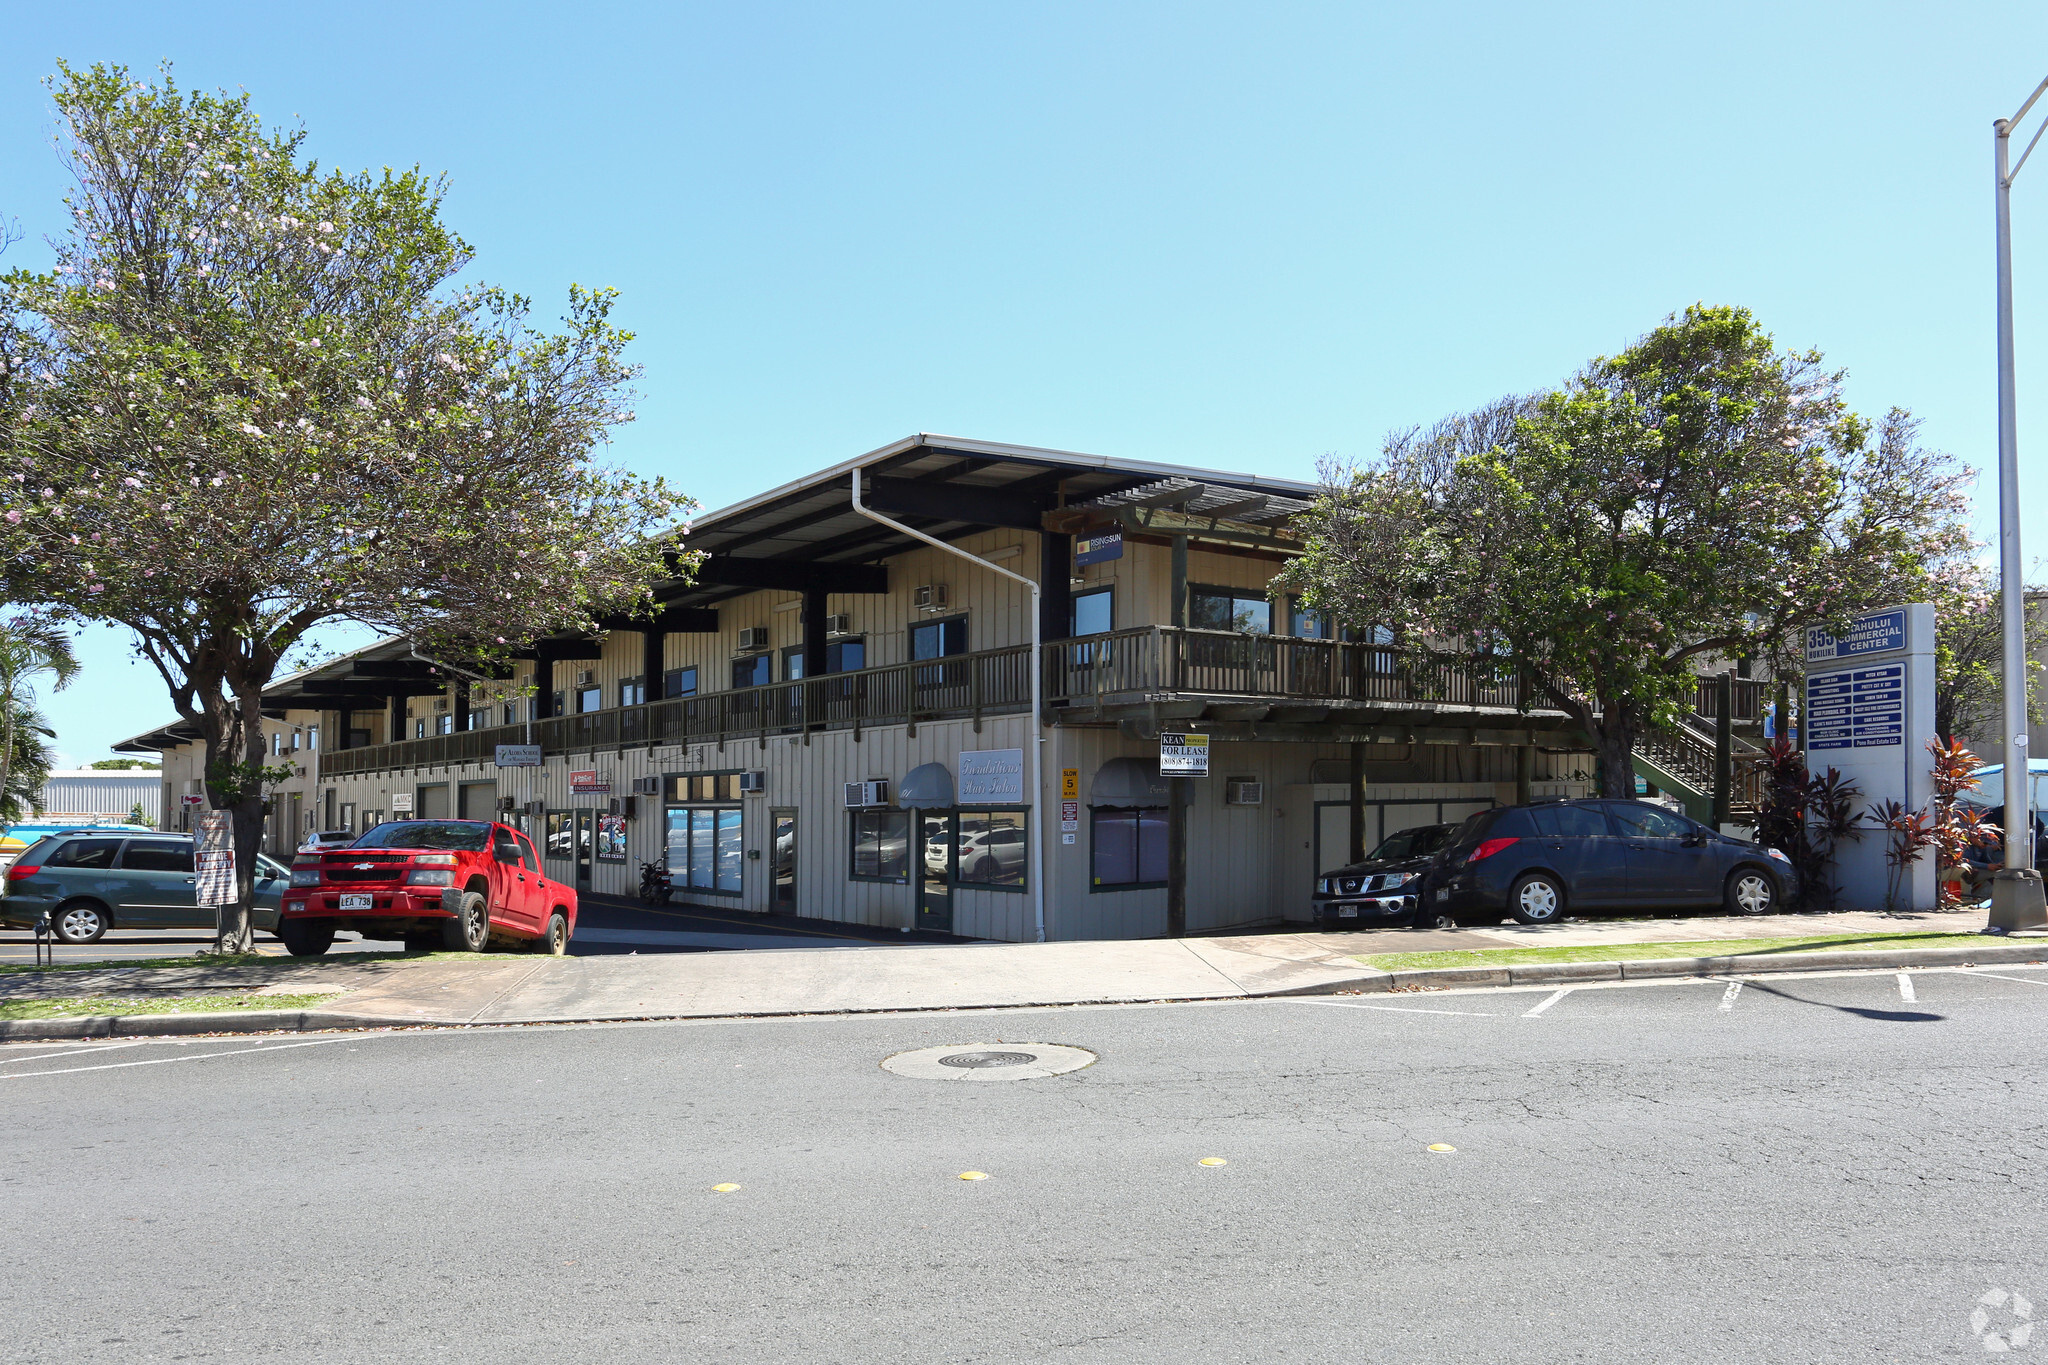 Commercial_Real_estate_for_Rent_on_Maui_355_Hukilike_St_Kahului